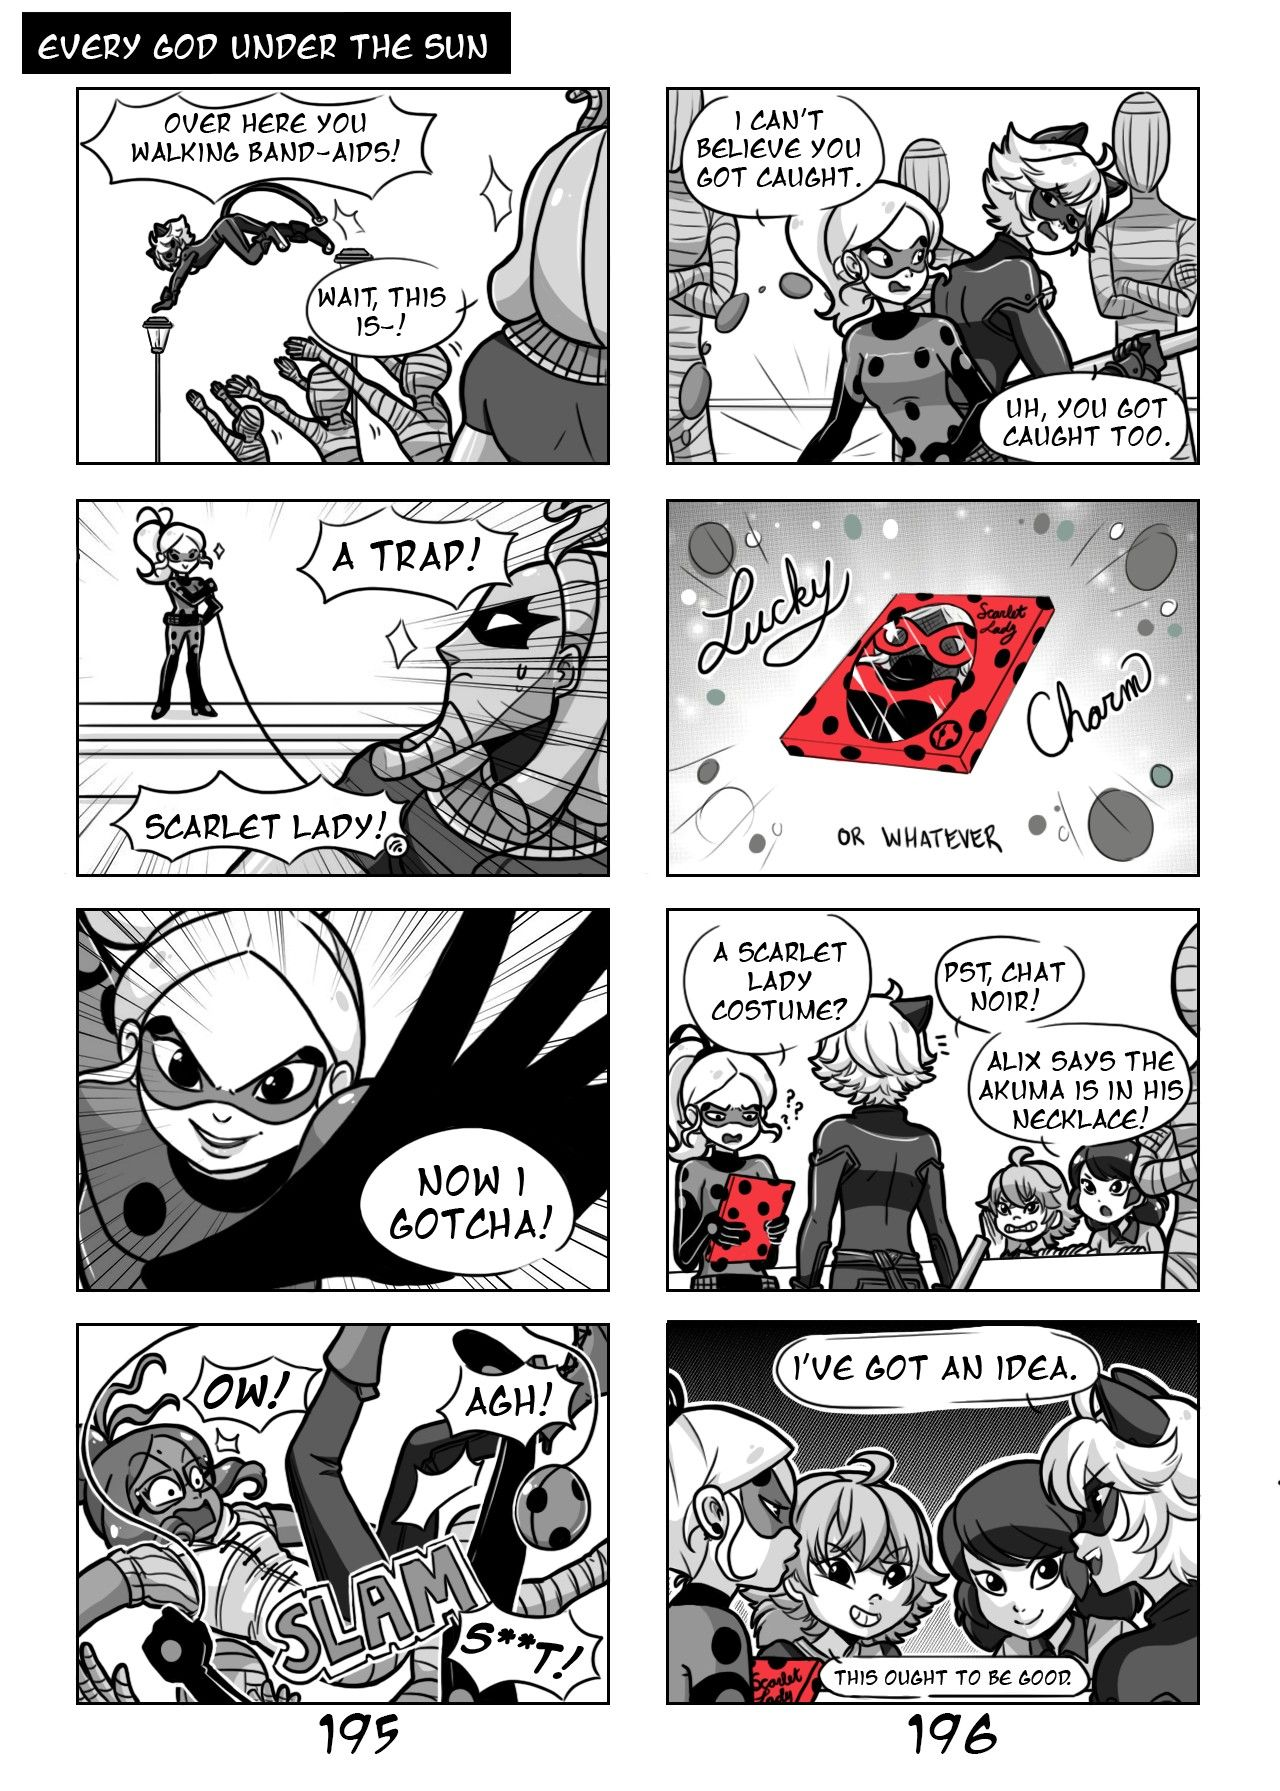 Pin By Strawhat On Miraculous Comic Scarlett Lady Au In 2020 Ladybug Cartoon Miraculous Ladybug Comic Miraculous Ladybug Anime